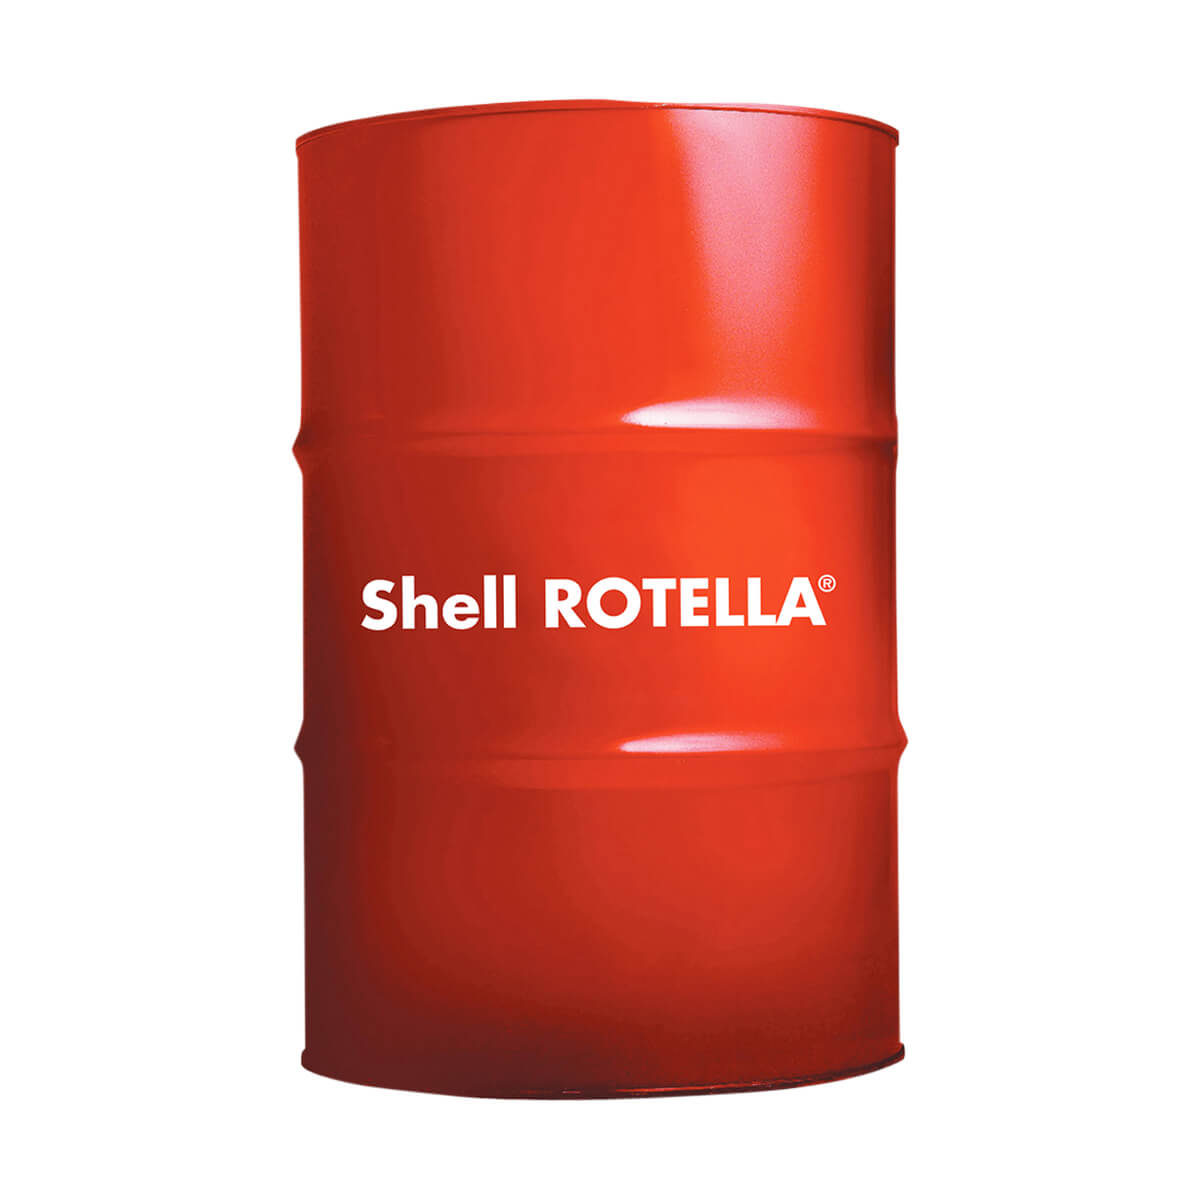 Shell Rotella T6 Triple Protection Synthetic 5W-40 - 208L